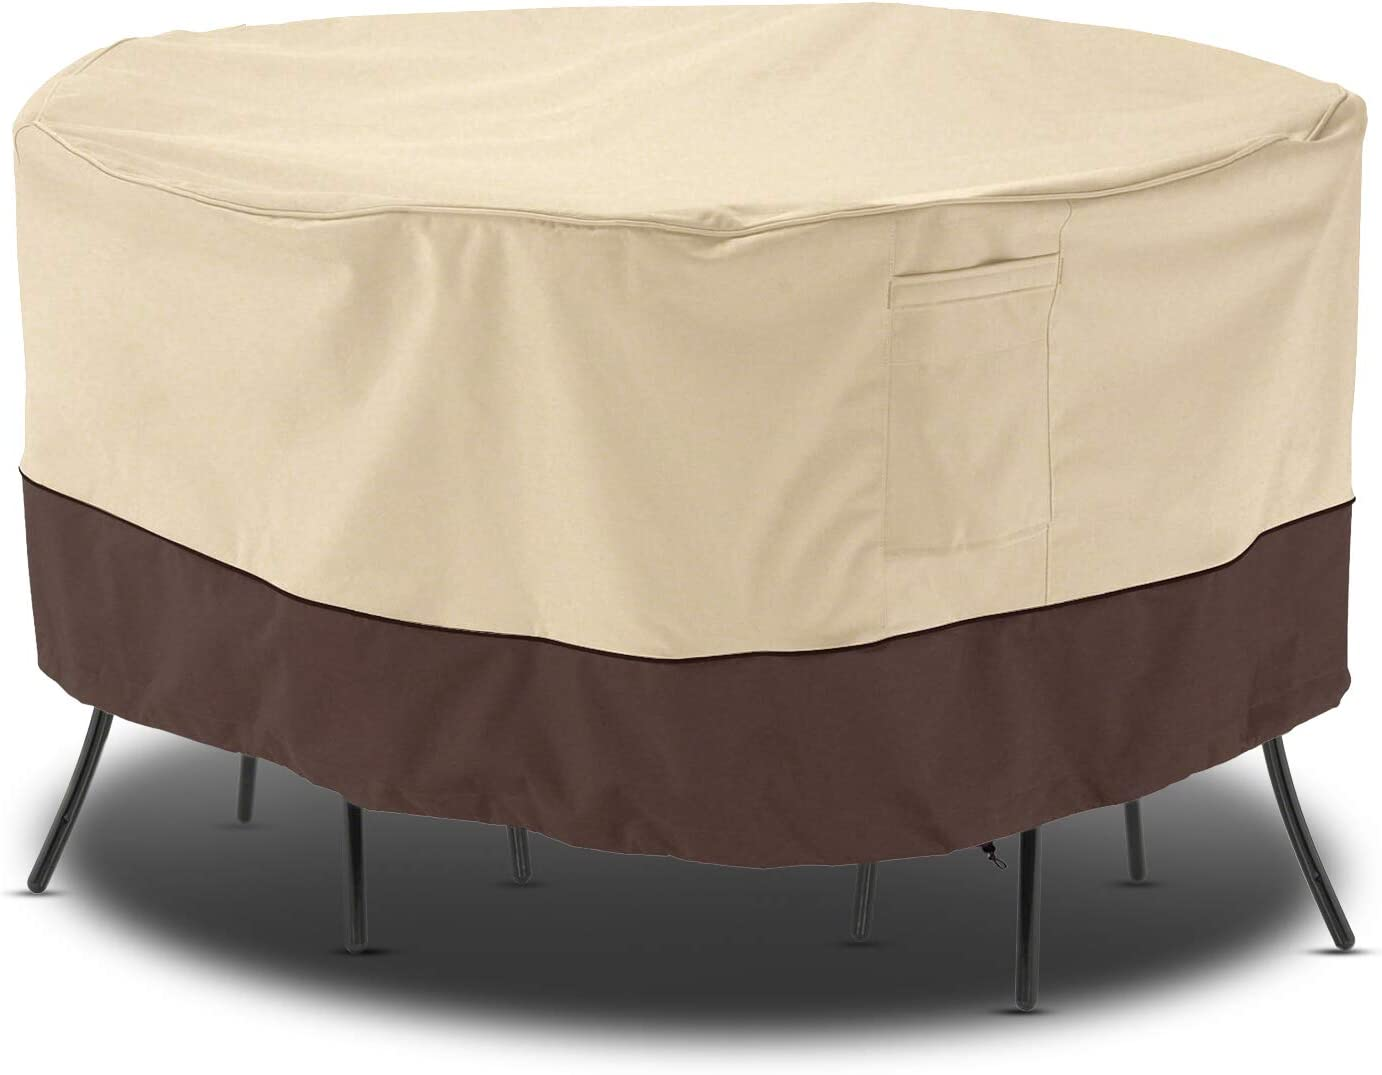 "Arcedo Patio Furniture Set Cover, Outdoor Round Table and Chair Cover, Heavy Duty Waterproof Lawn Dining Table Cover with Buckled Strap, Dustproof and Sunproof, 84"" Dia, Beige & Brown : Garden & Outdoor"